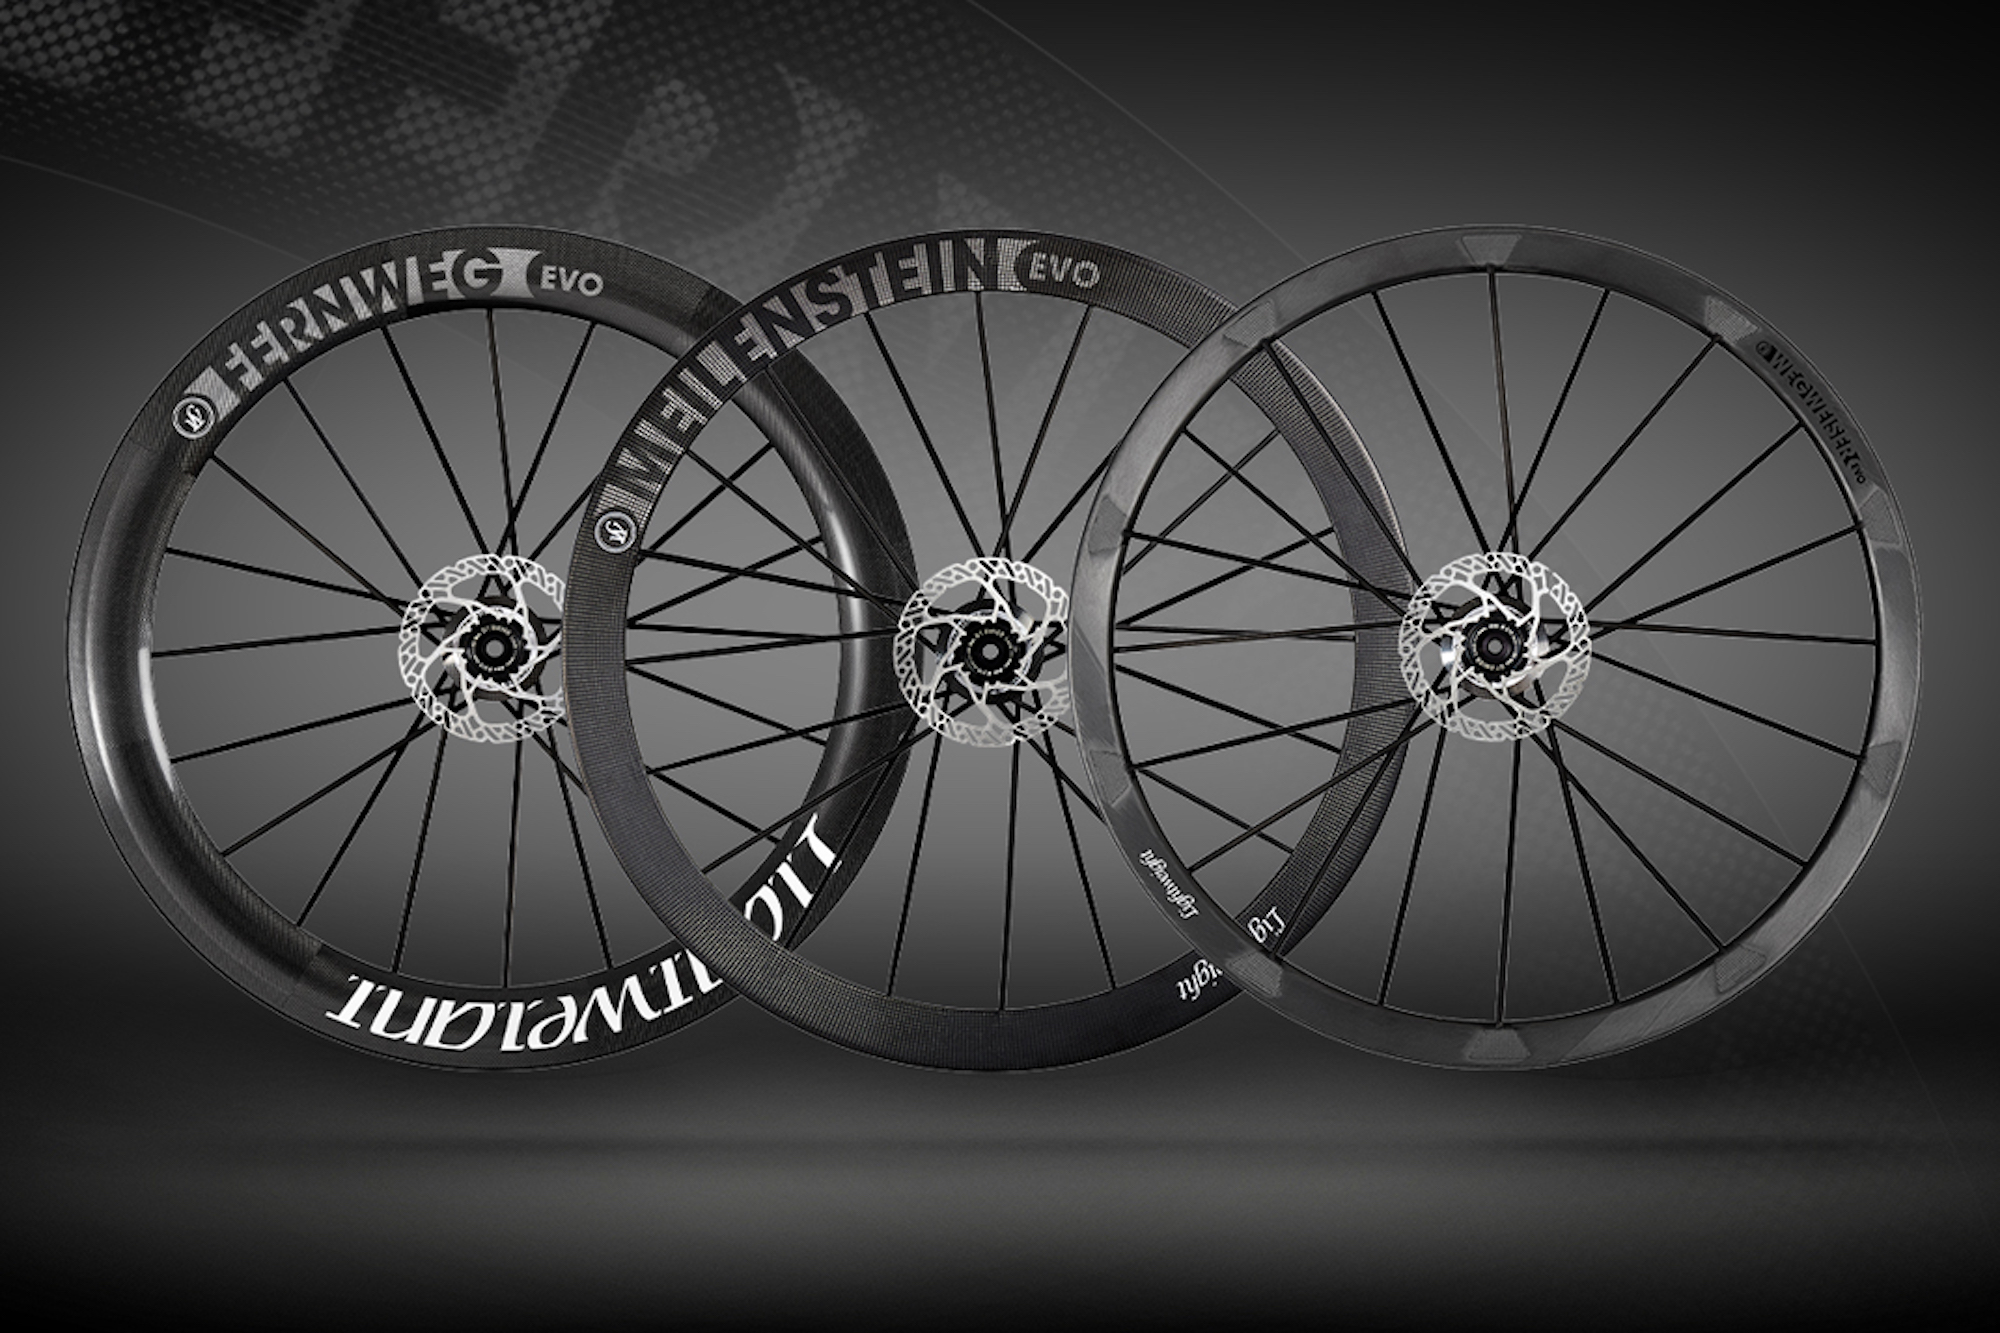 Lightweight wheels releases new tubeless ready Evo wheelsets